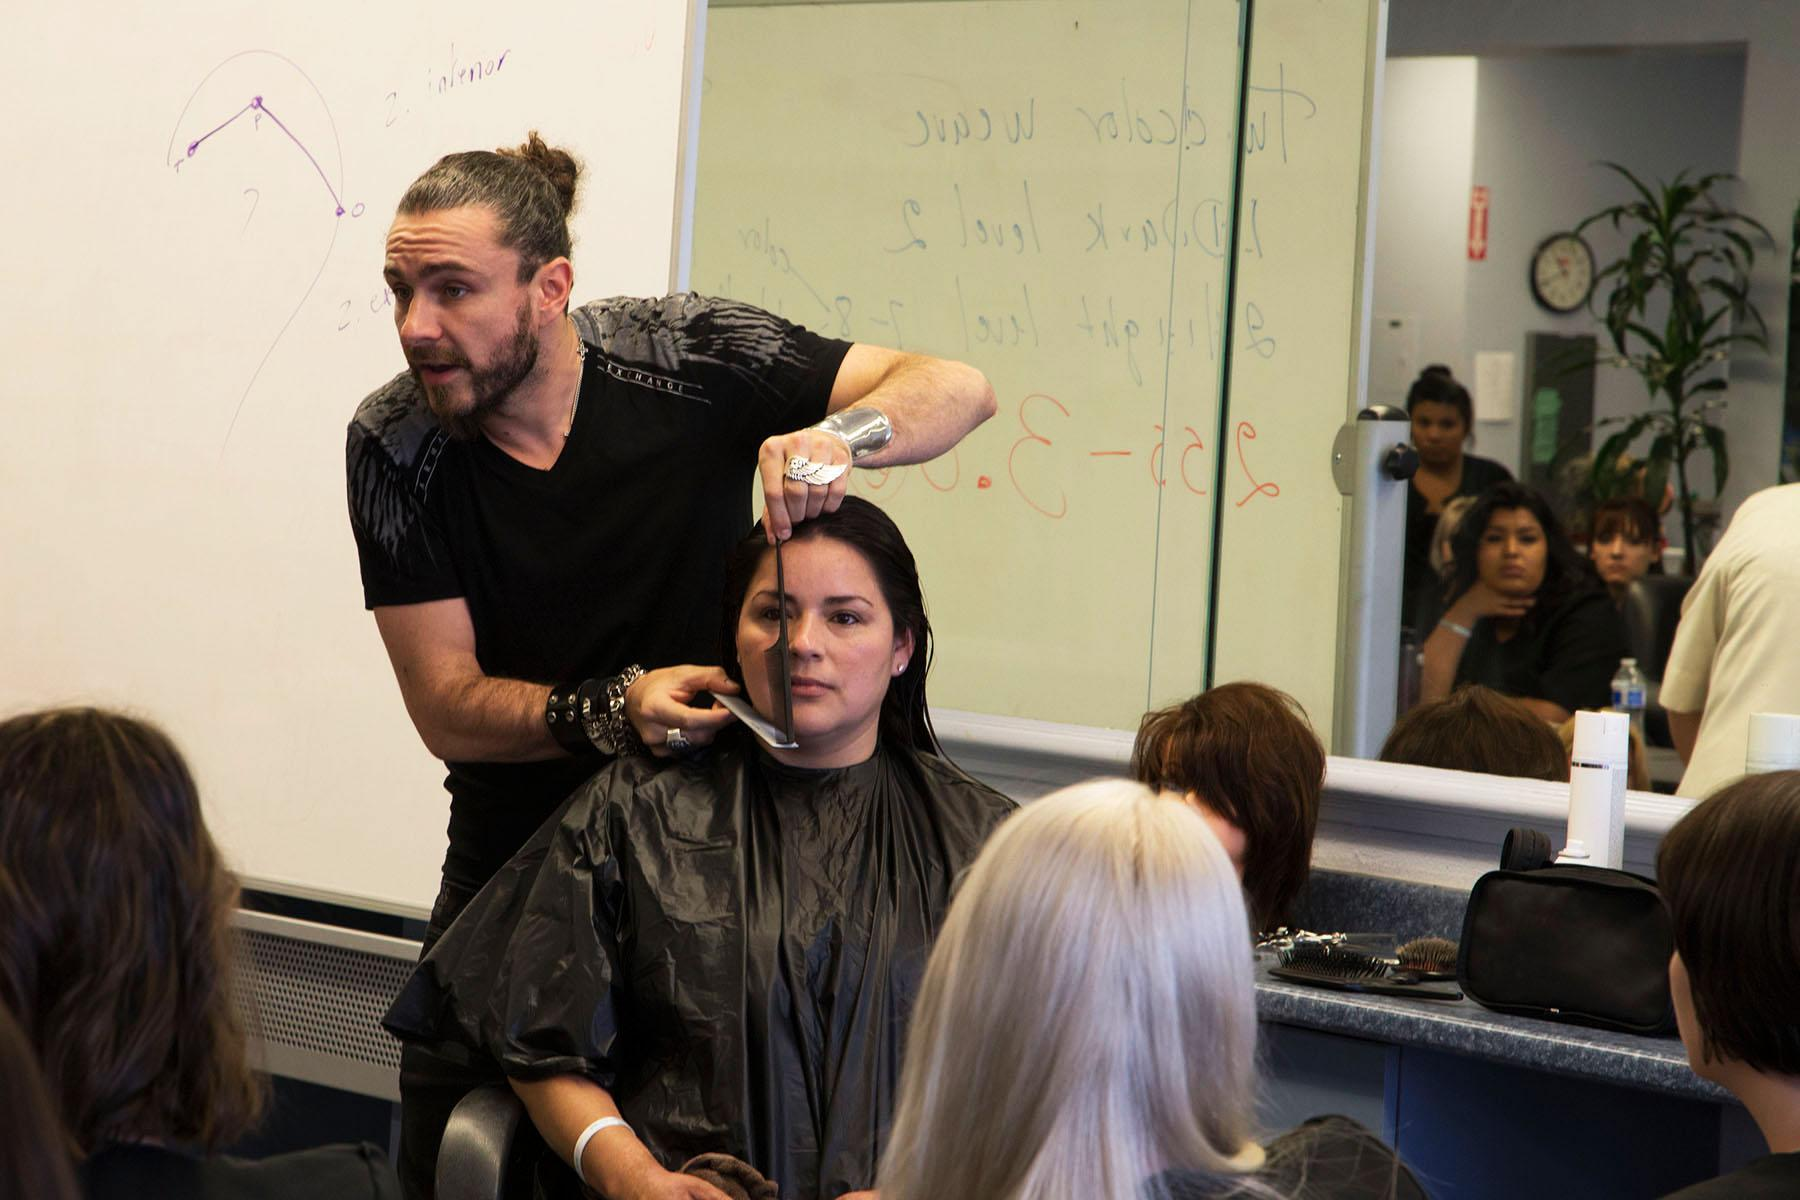 Raphael Perrier, a prominent hair stylist, demonstrates his hair cutting techniques on model Margarita Perez, a student in the cosmetology program, Tuesday, April 21, at the Cosmetology Academy in the Magnolia Shopping Center in Goleta. 'The most important part of a haircut is all the geometrics,' says Perrier.